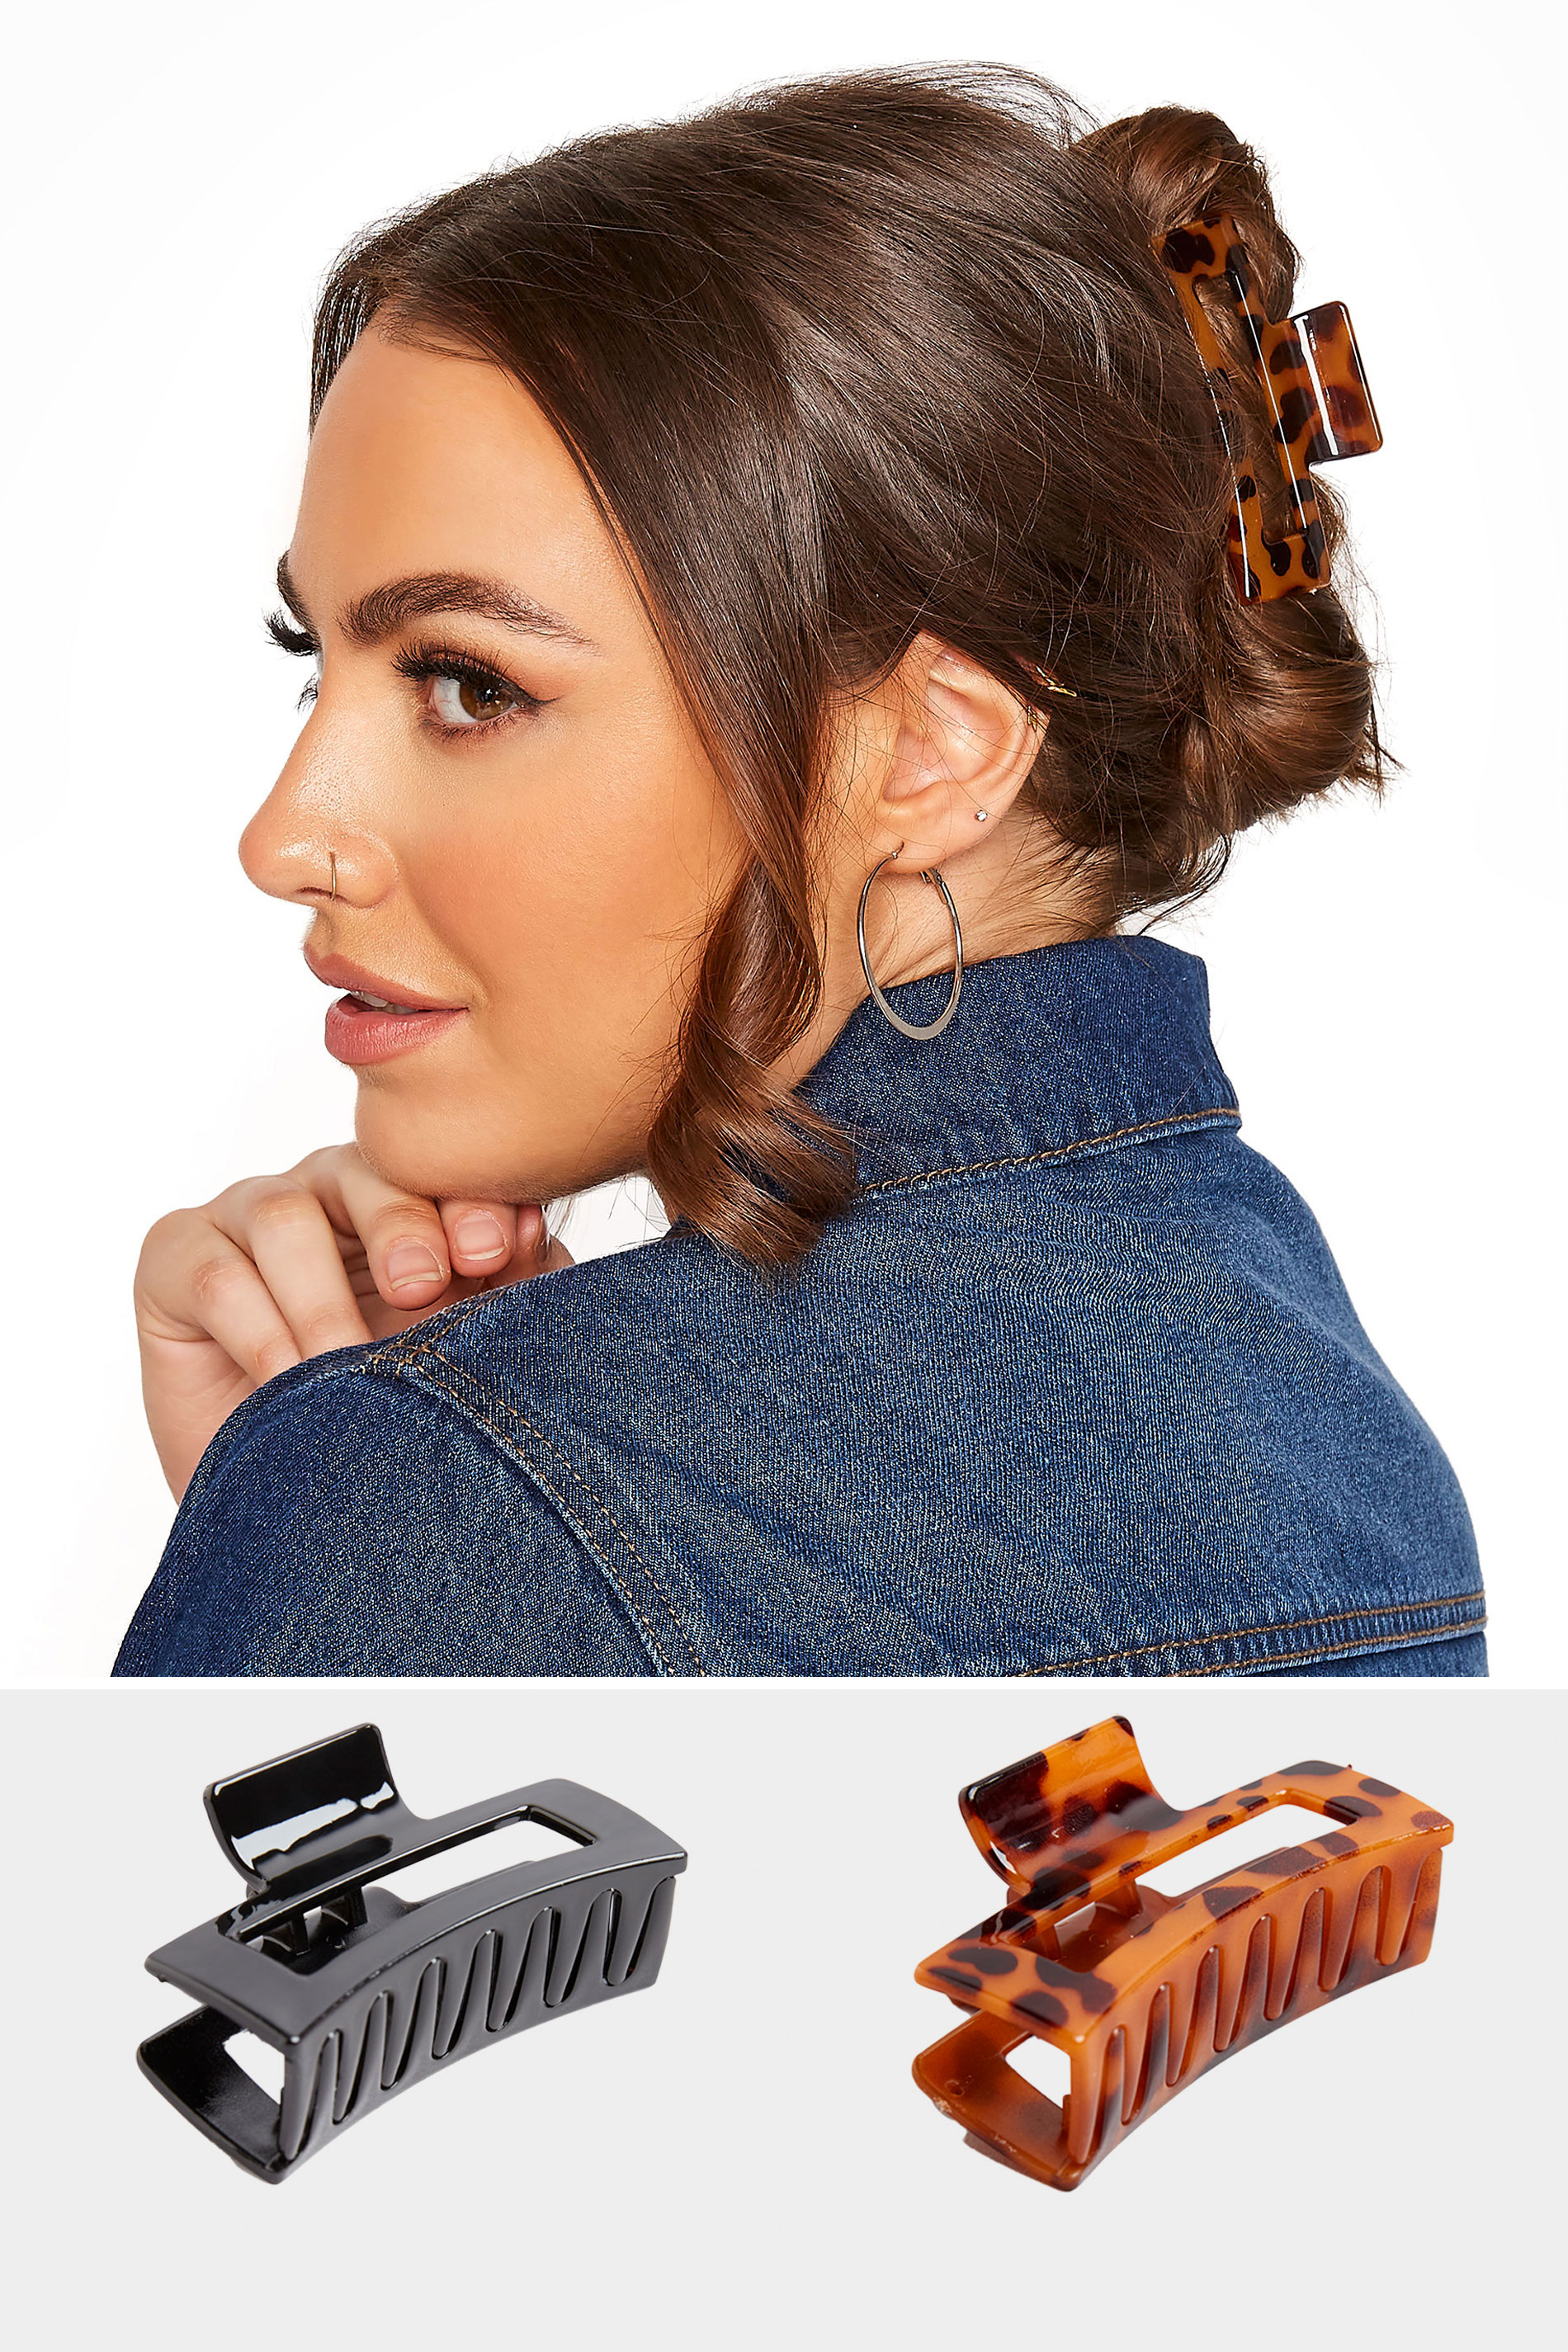 Yours 2 PACK Tortoiseshell and Black Hair Clips